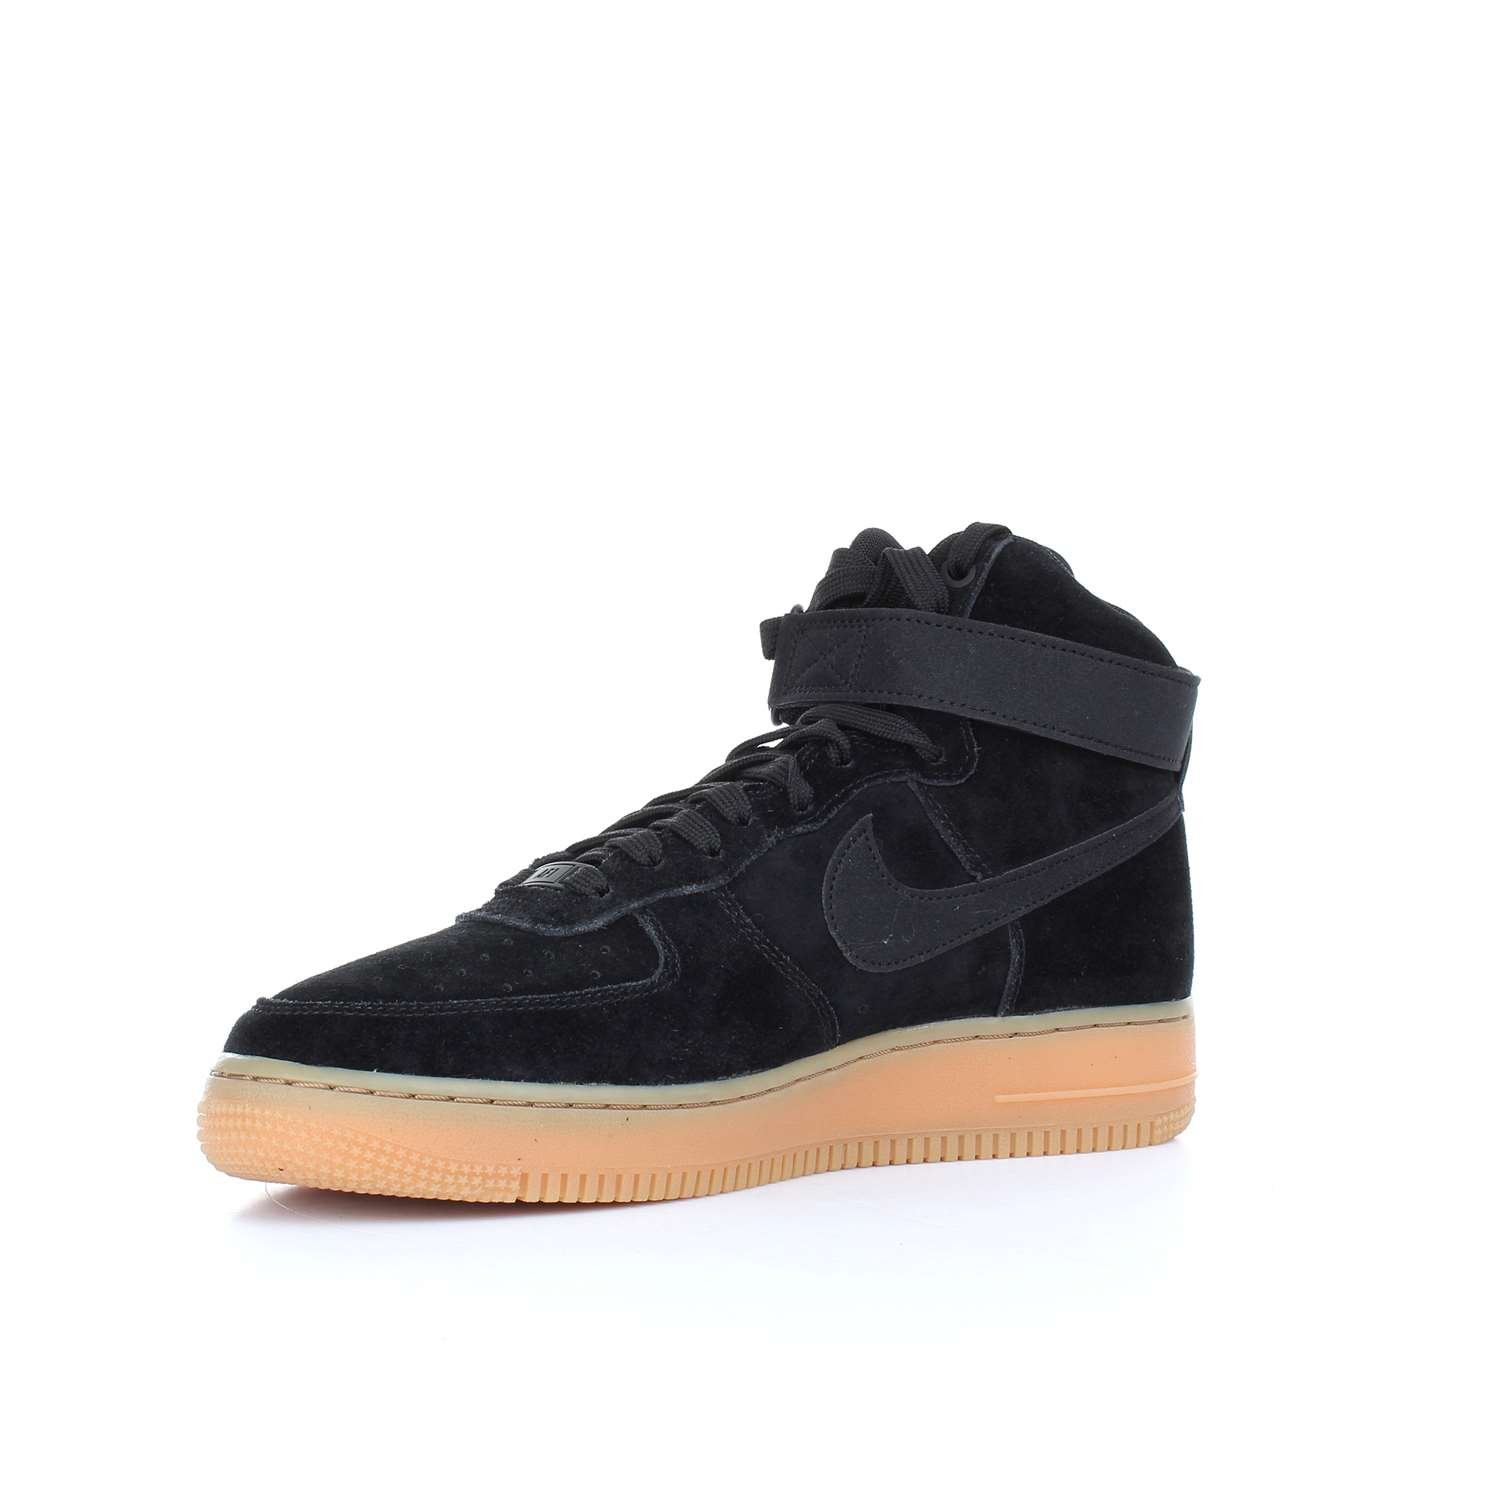 innovative design 54048 2a71b Scarpe Uomo Nike Air Force 1 Igh 07 Lv8 Suede Aa1118 (40 - 001